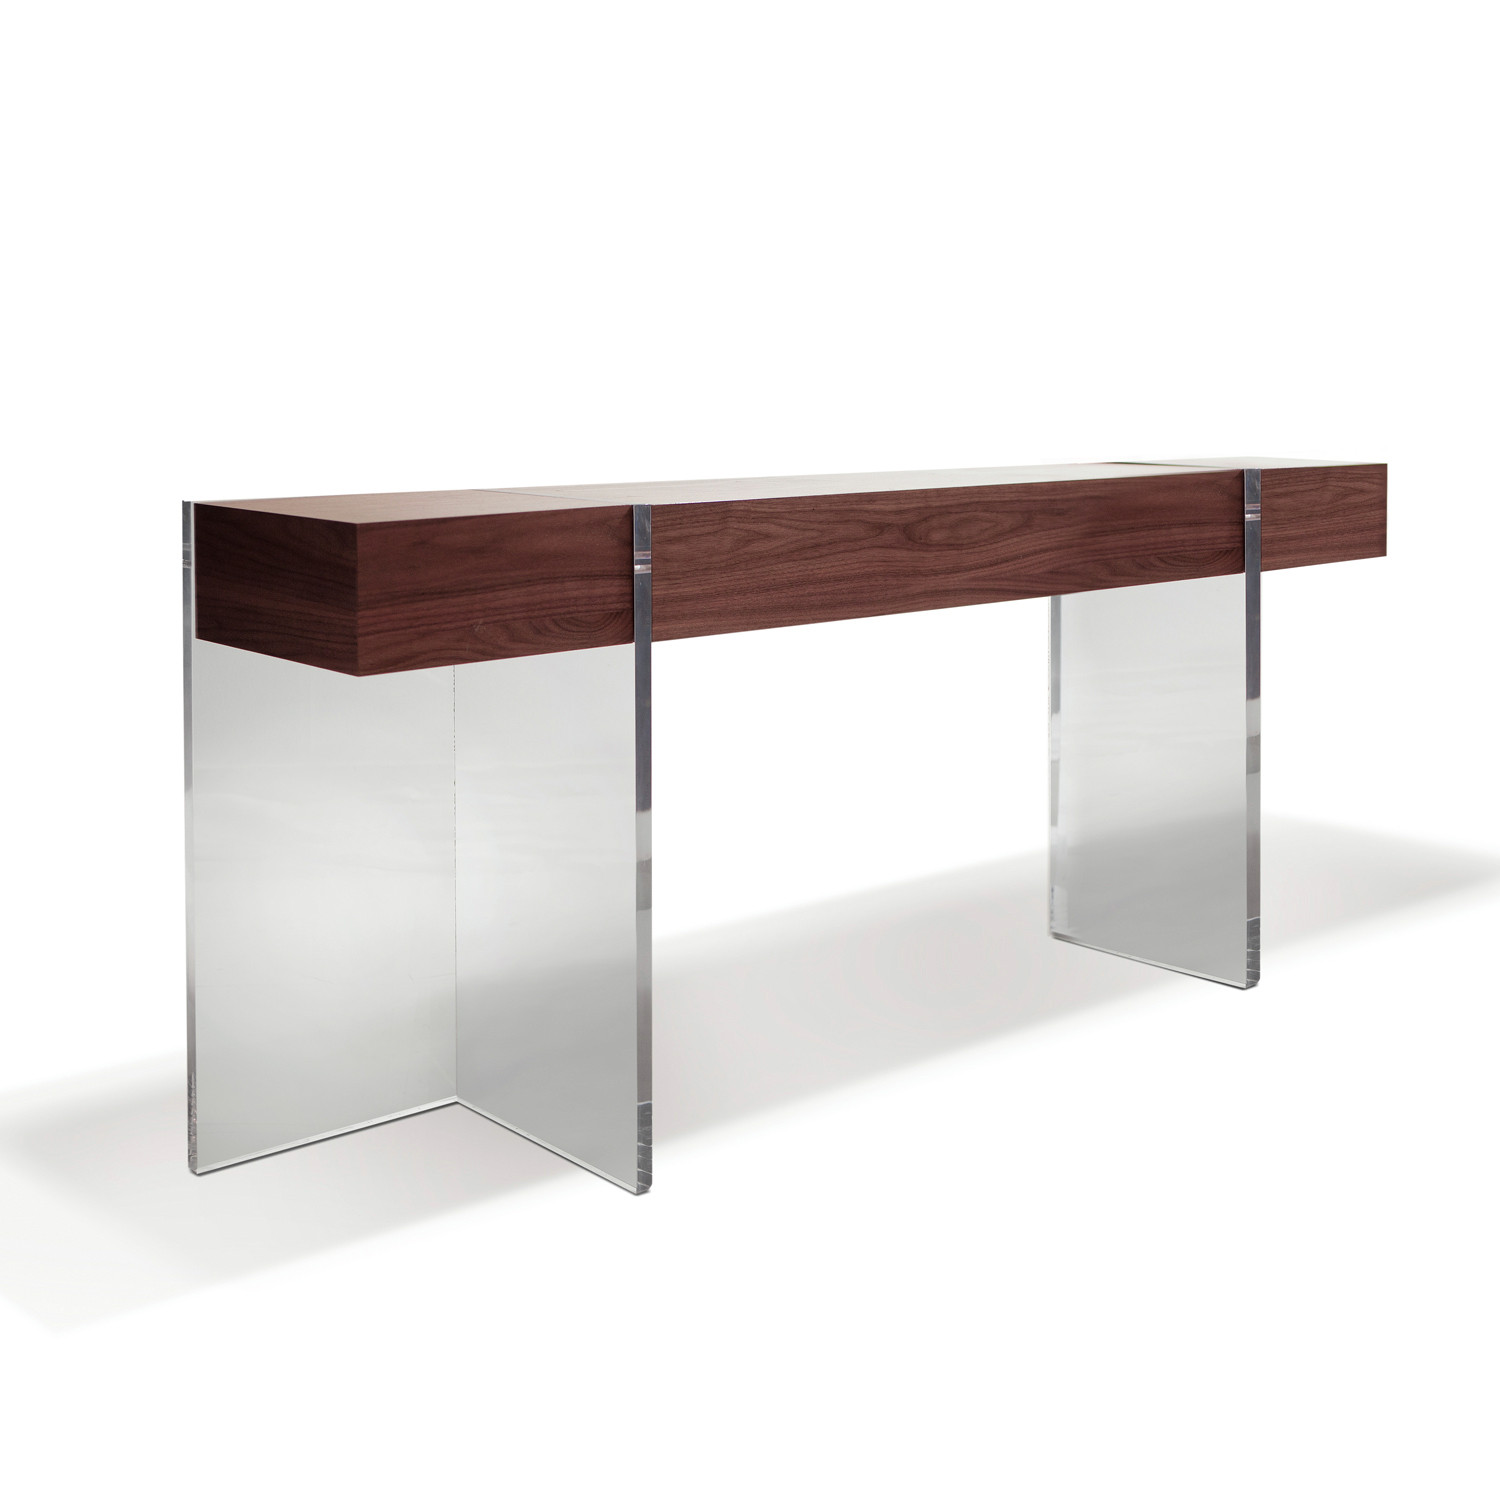 Superb img of Dezign4u: Collection of B. Pila acrylic furniture. with #3E201E color and 1500x1500 pixels